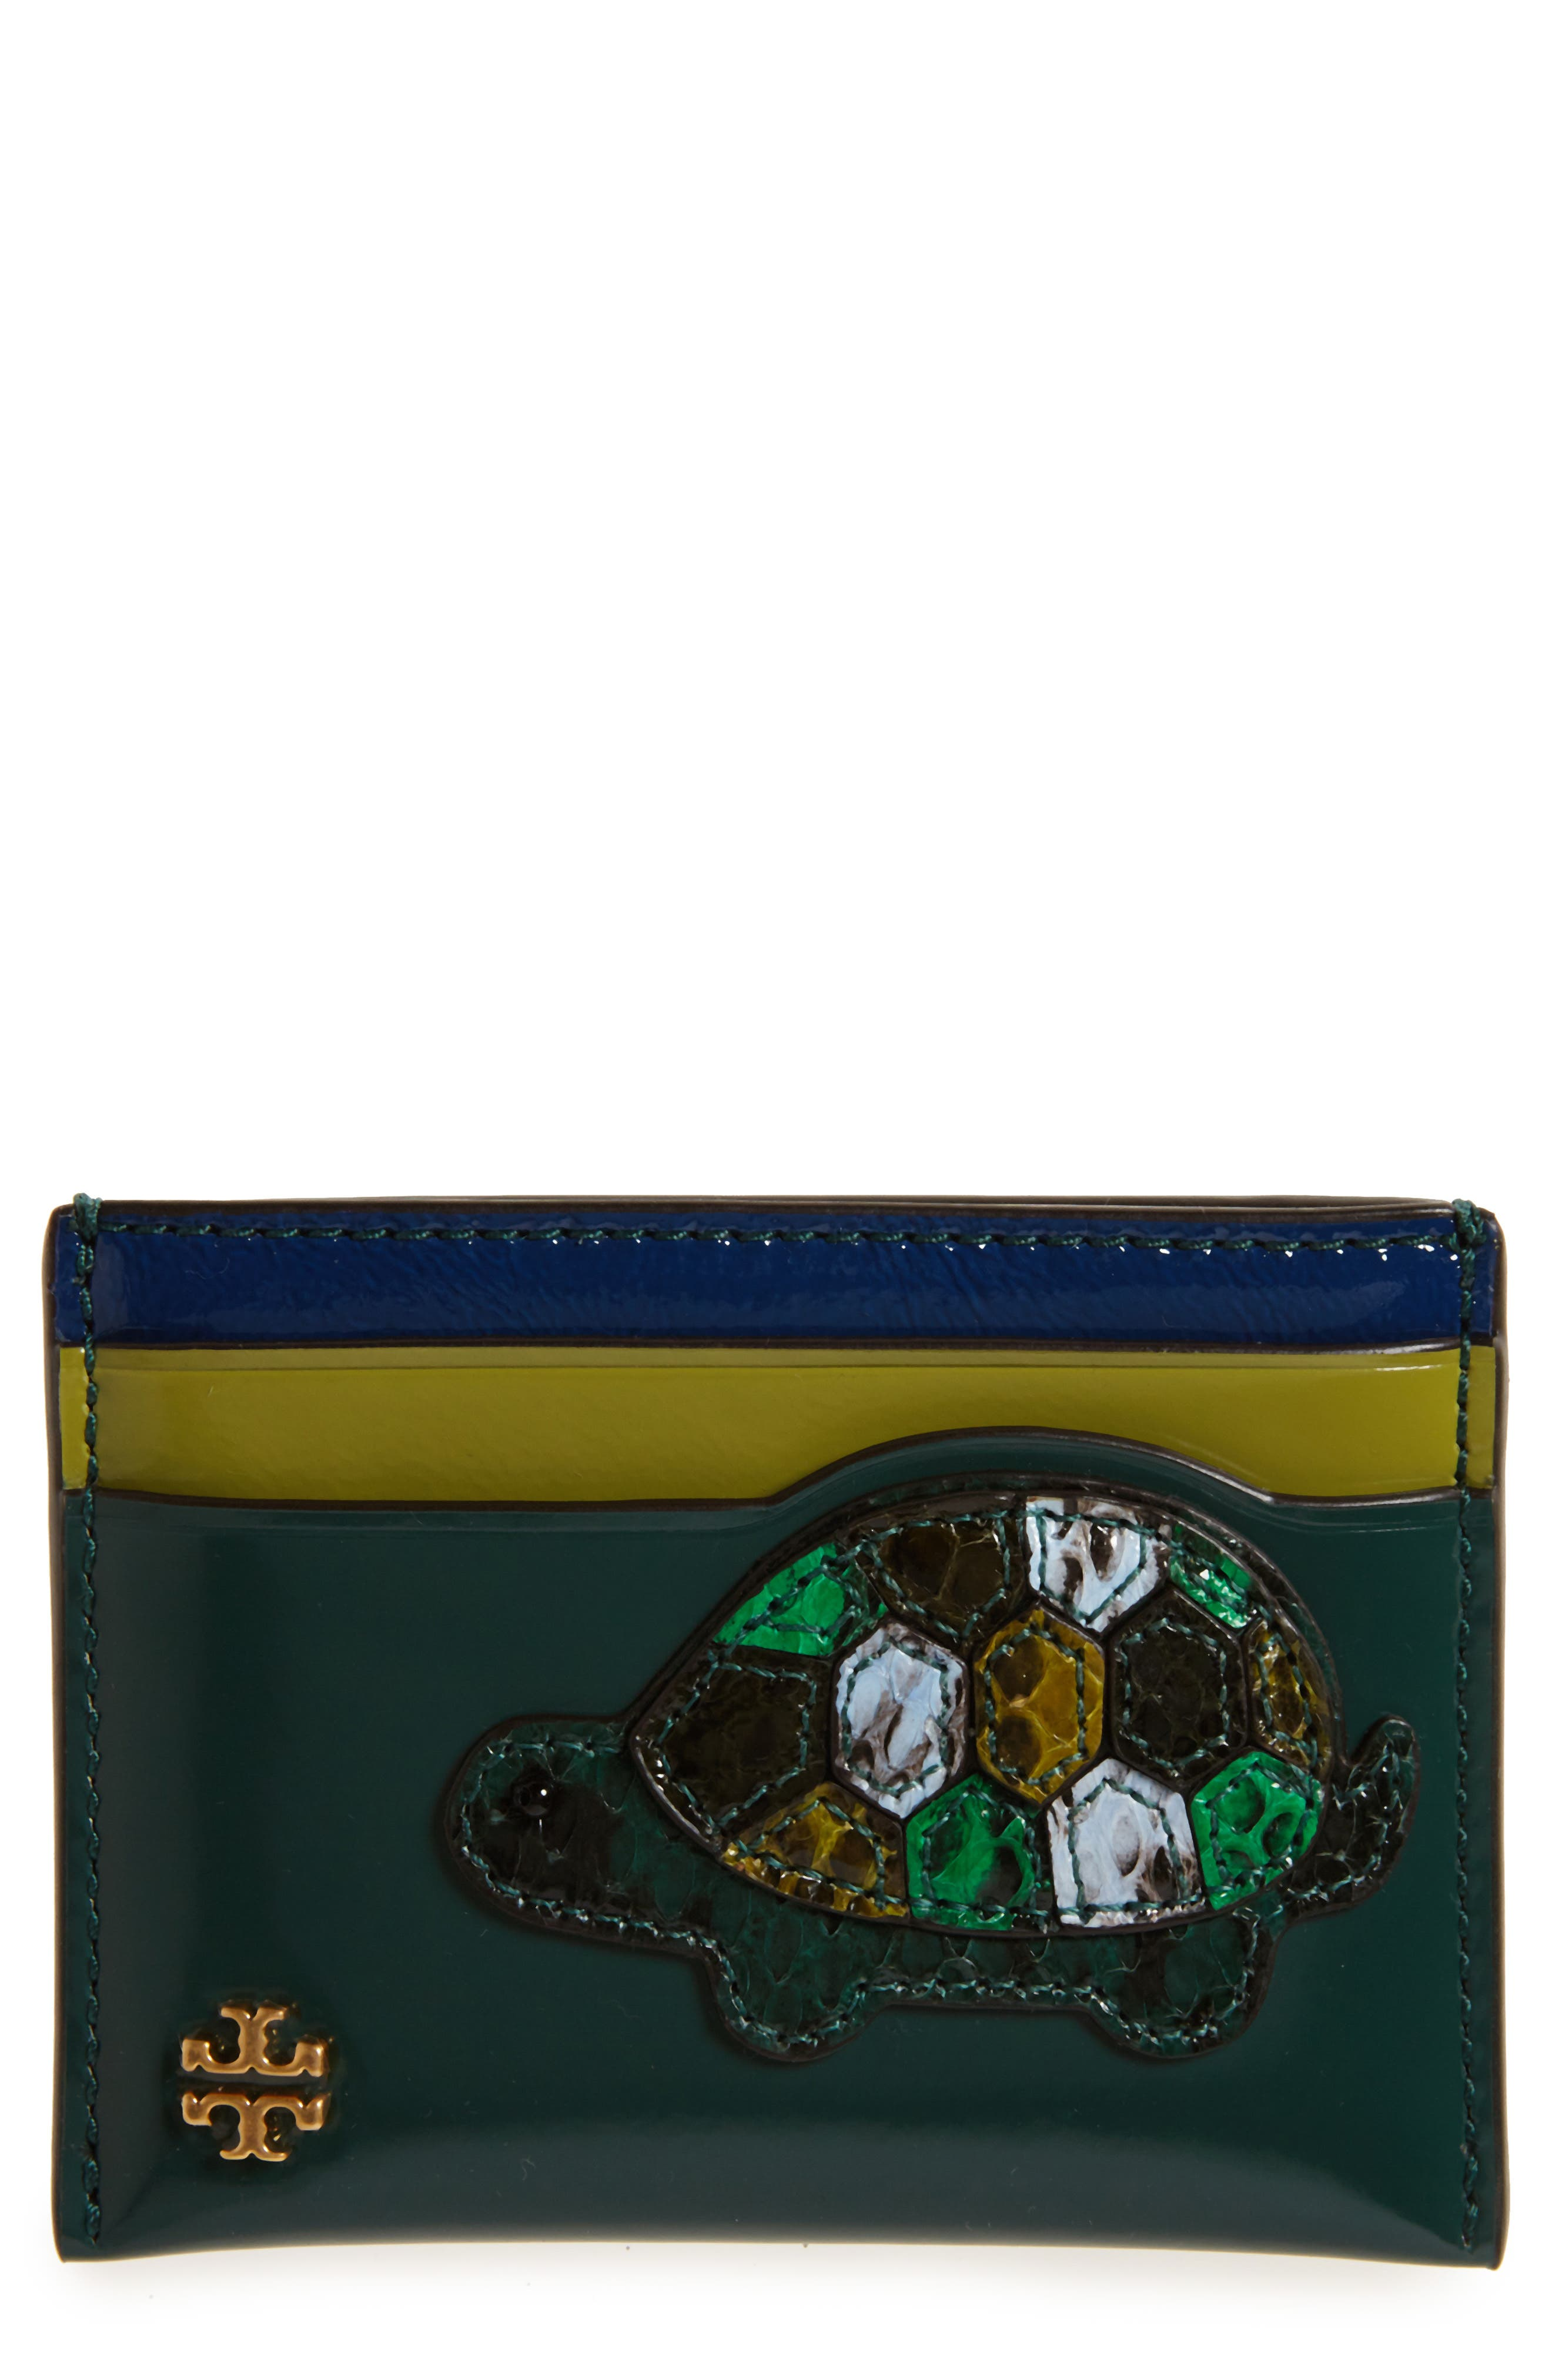 Tory Burch Turtle Appliqué Leather & Genuine Snakeskin Card Case